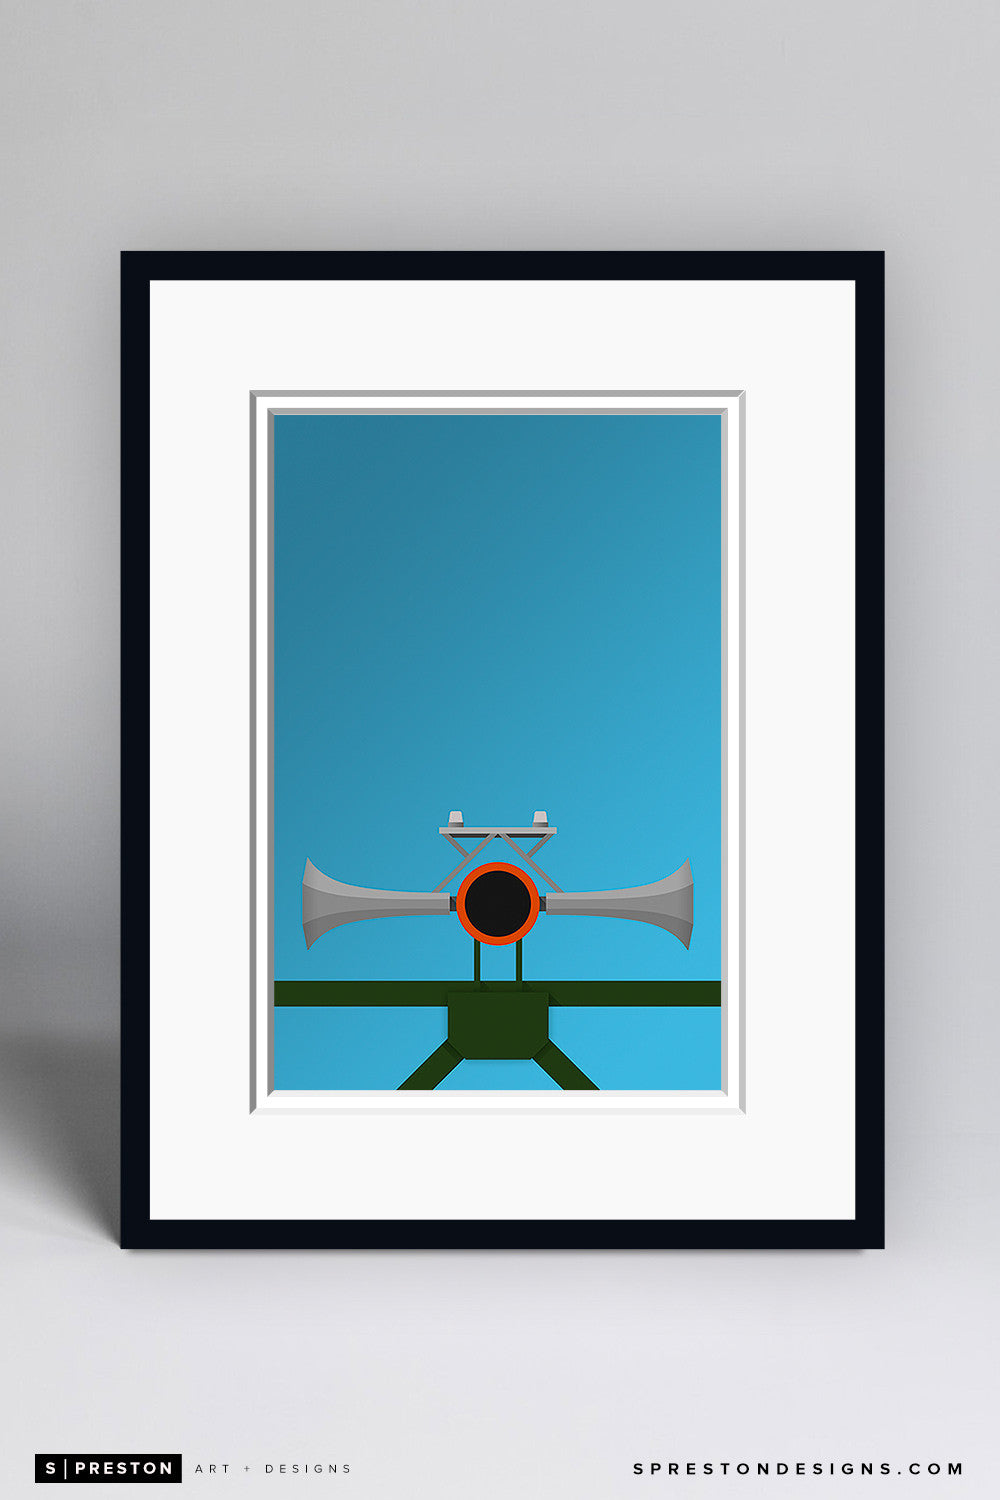 Minimalist AT&T Park Art Print - San Francisco Giants - S. Preston Art + Designs